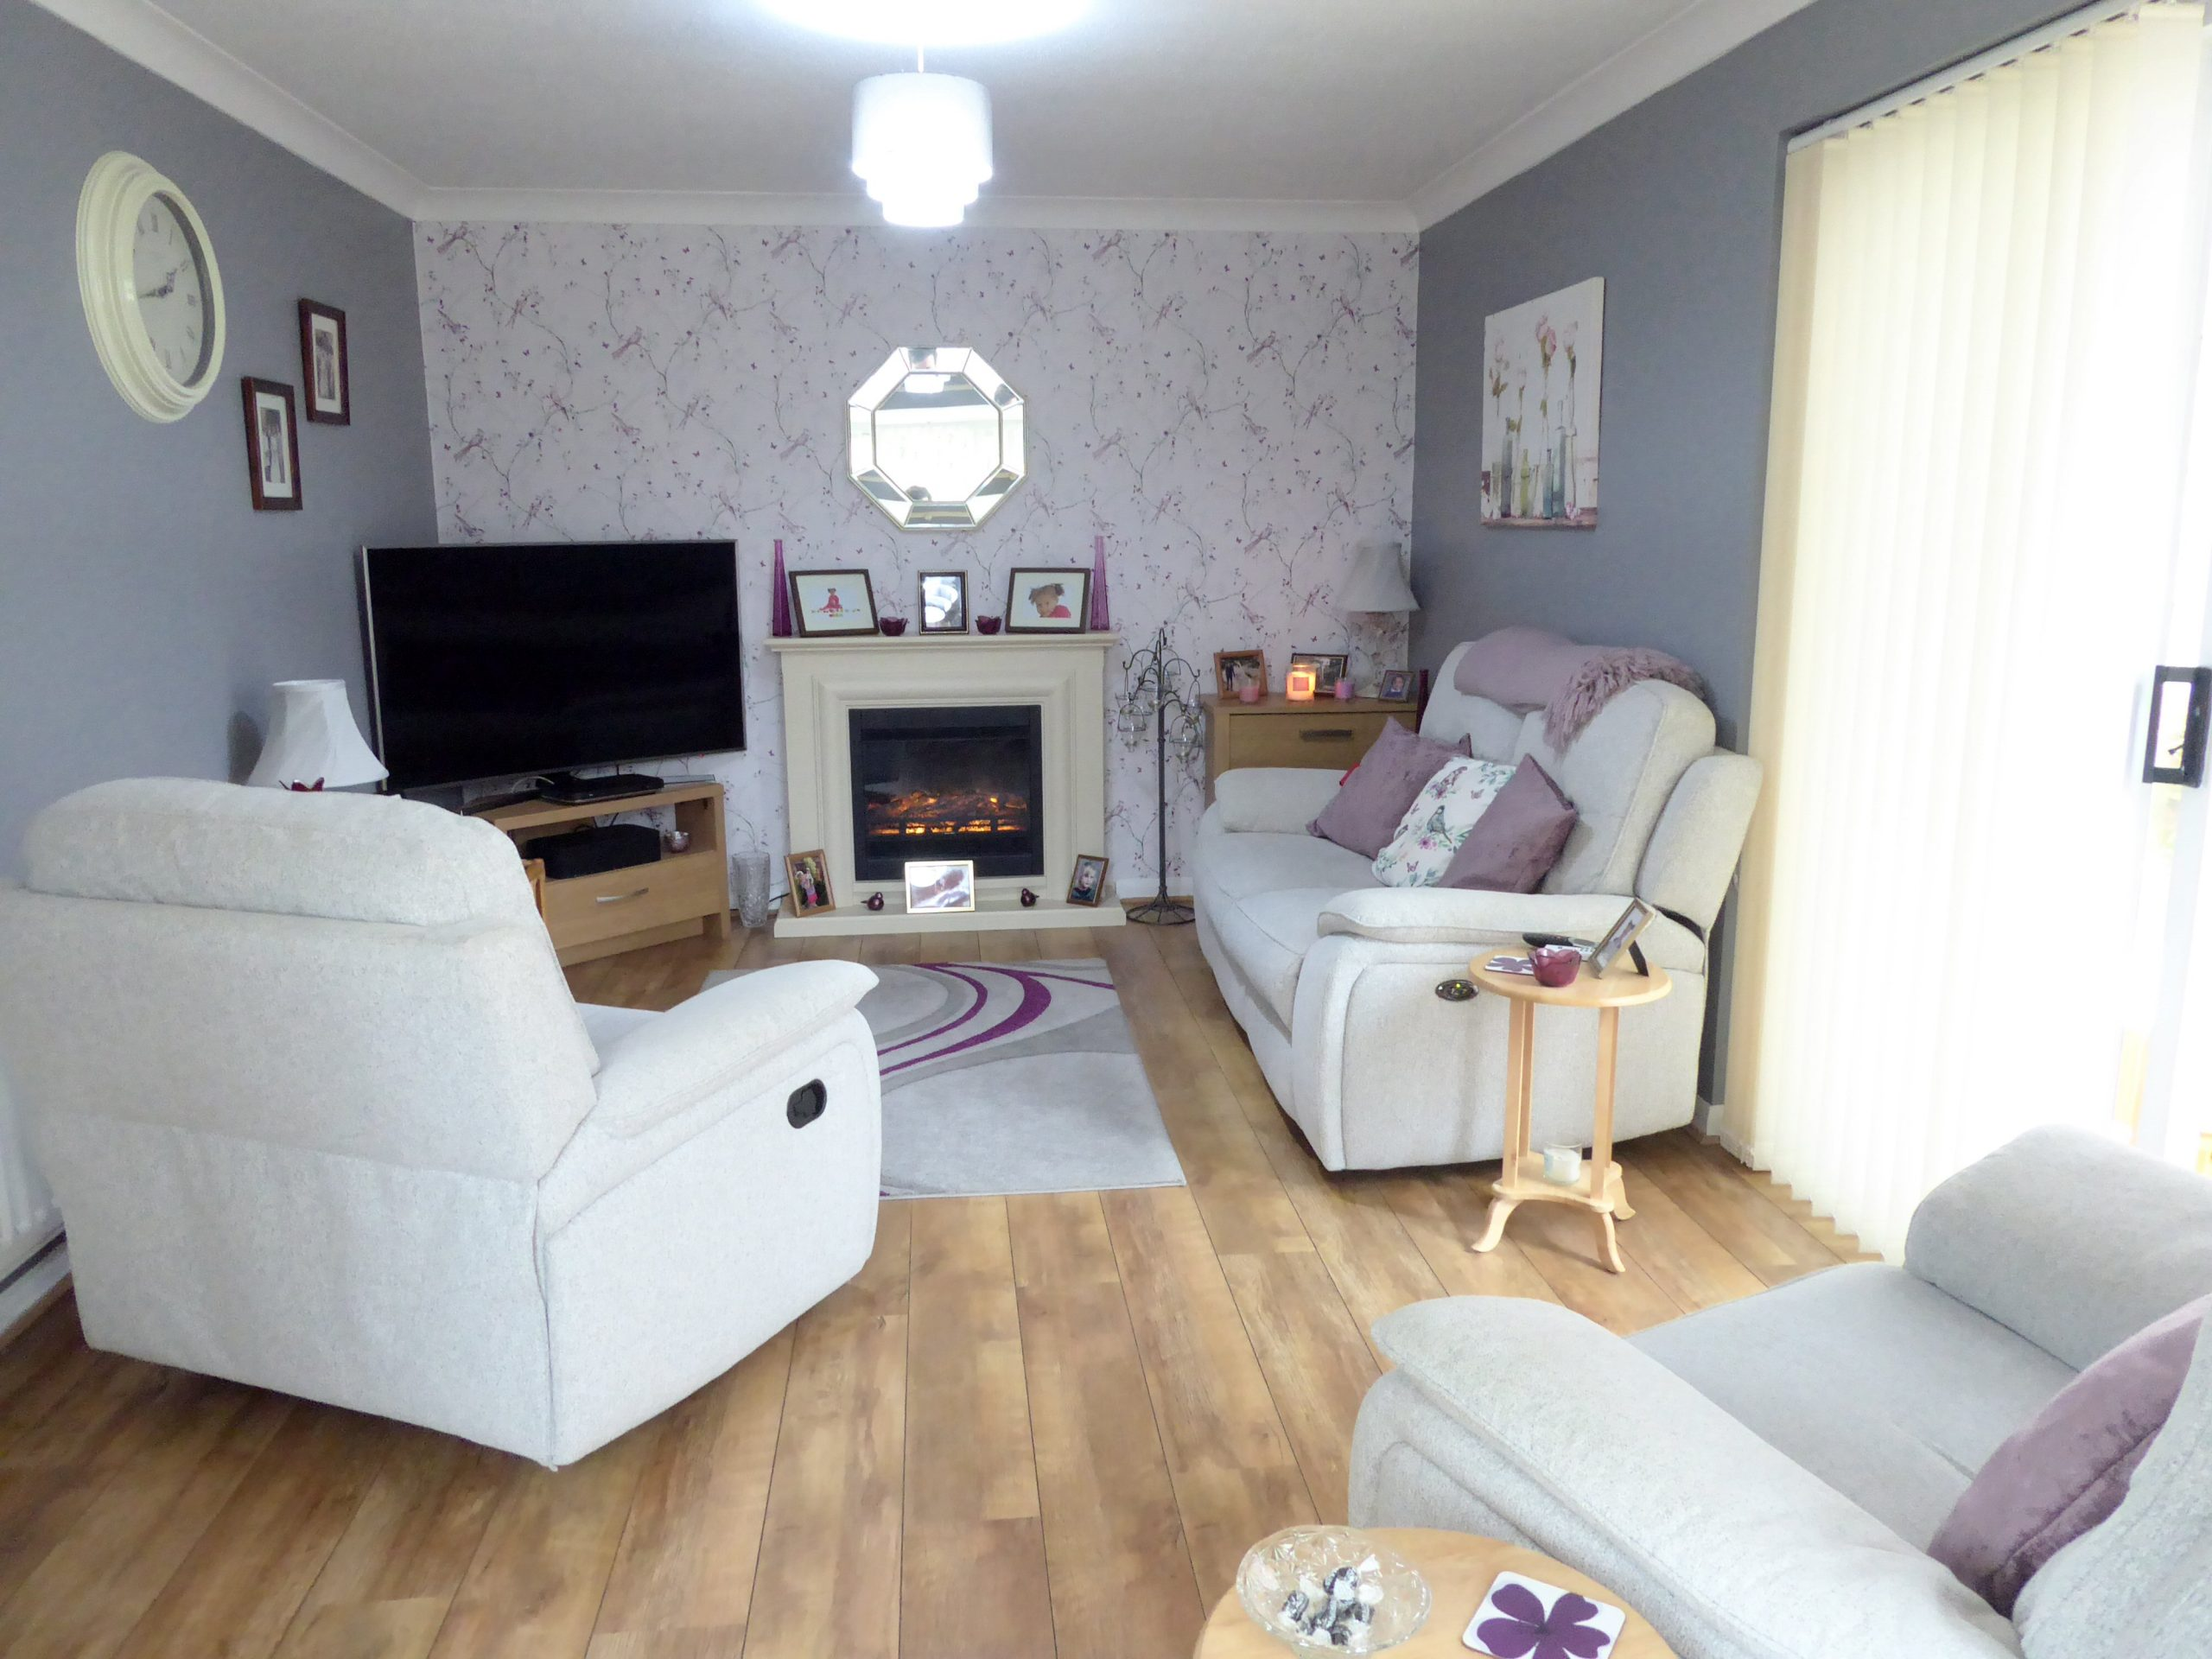 2 Bedroom House Rent Section 8